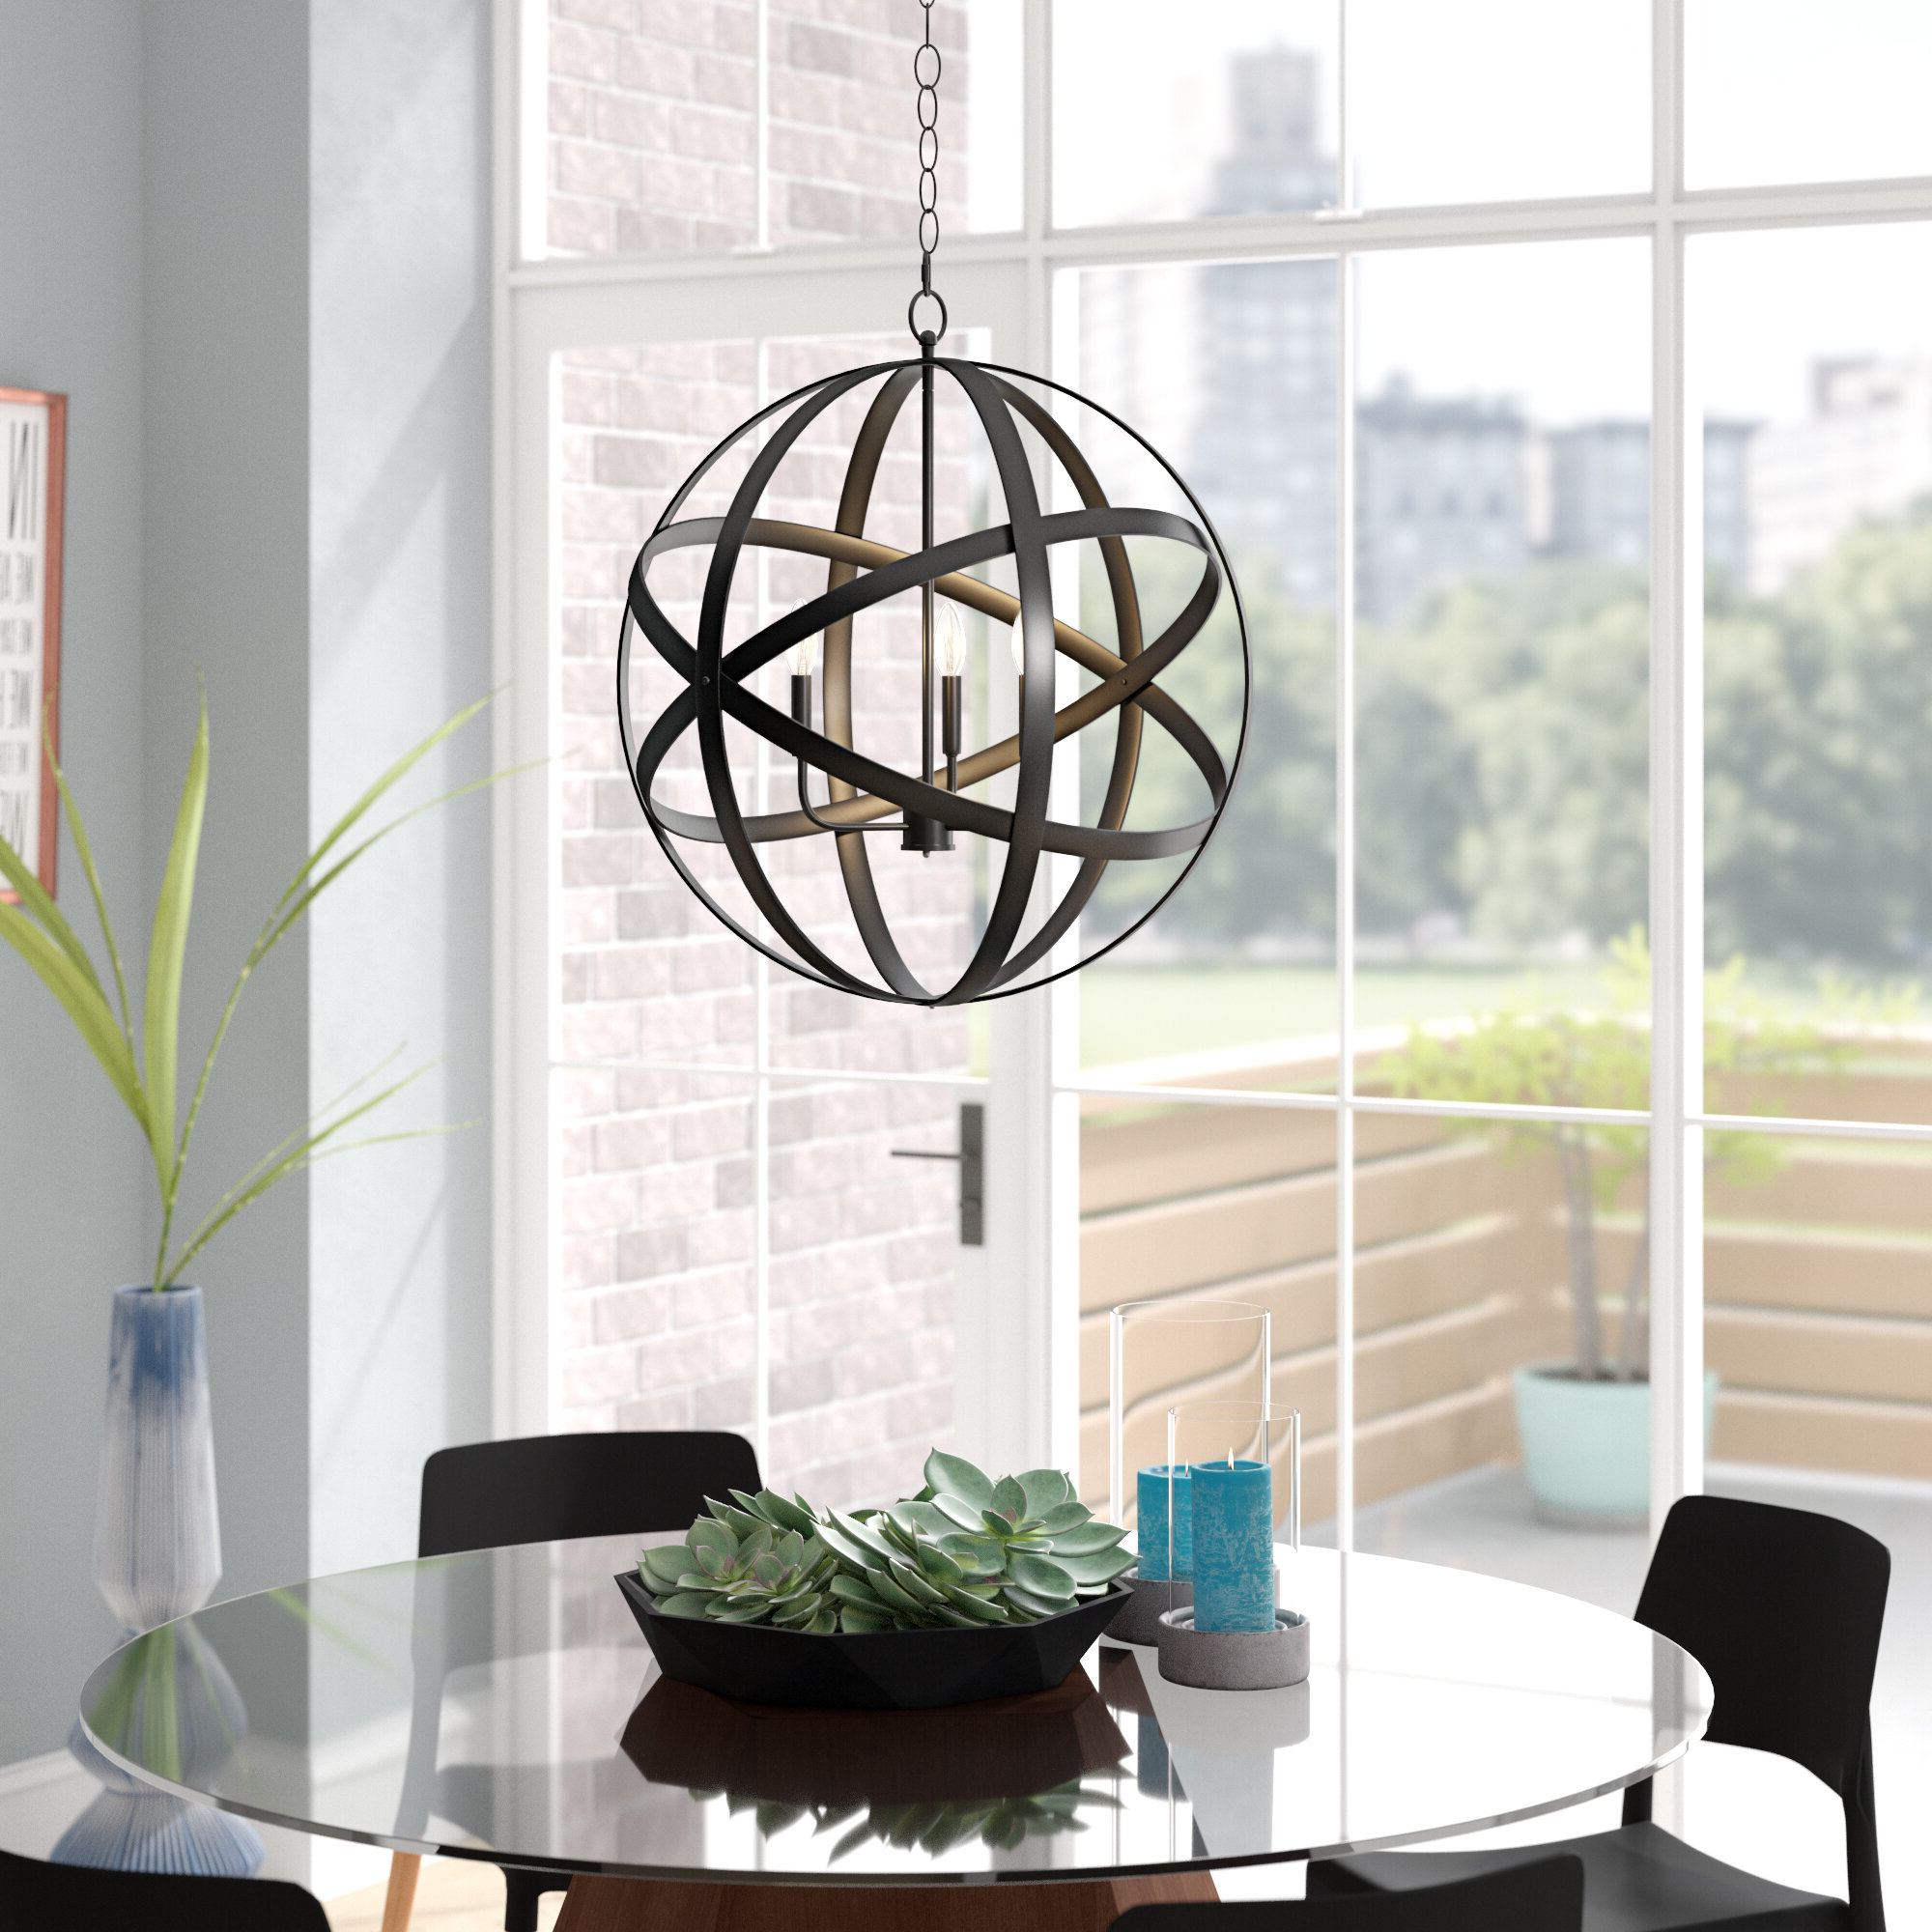 Ealey 1 Light Single Globe Pendant Intended For 2019 Irwin 1 Light Single Globe Pendants (Gallery 2 of 25)